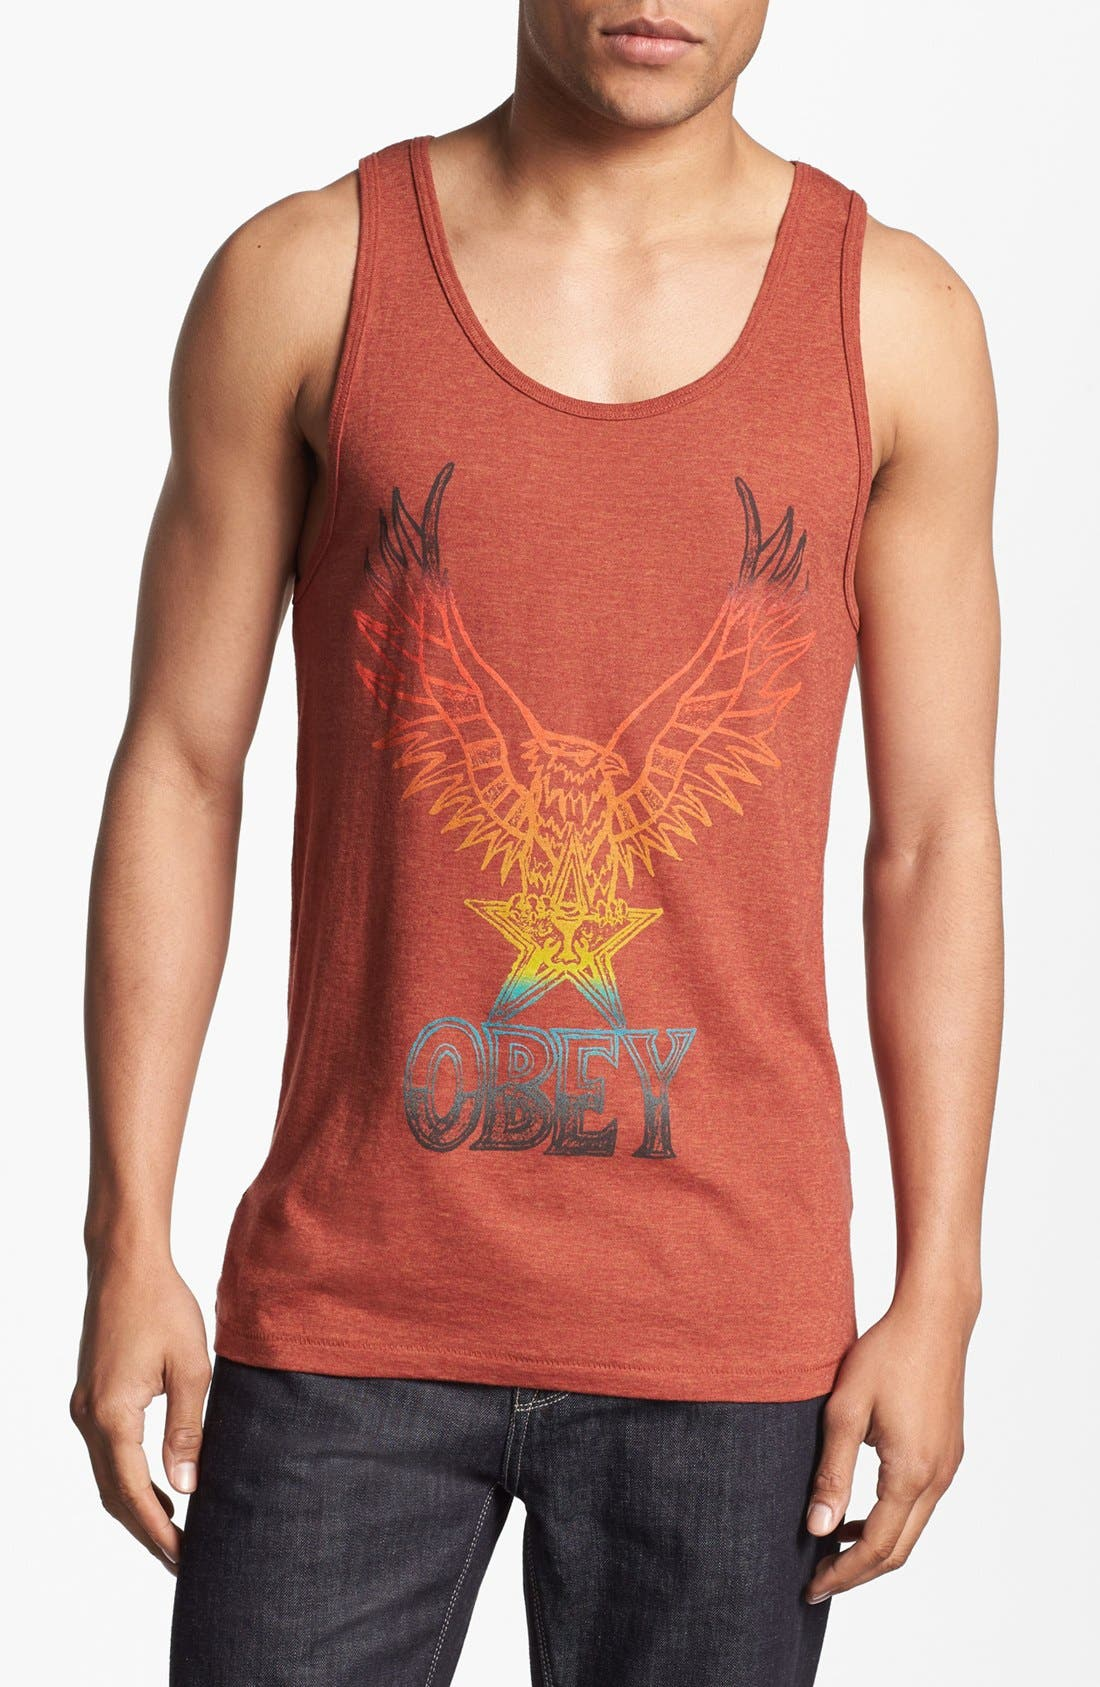 Alternate Image 1 Selected - Obey 'Take Flight' Graphic Tank Top